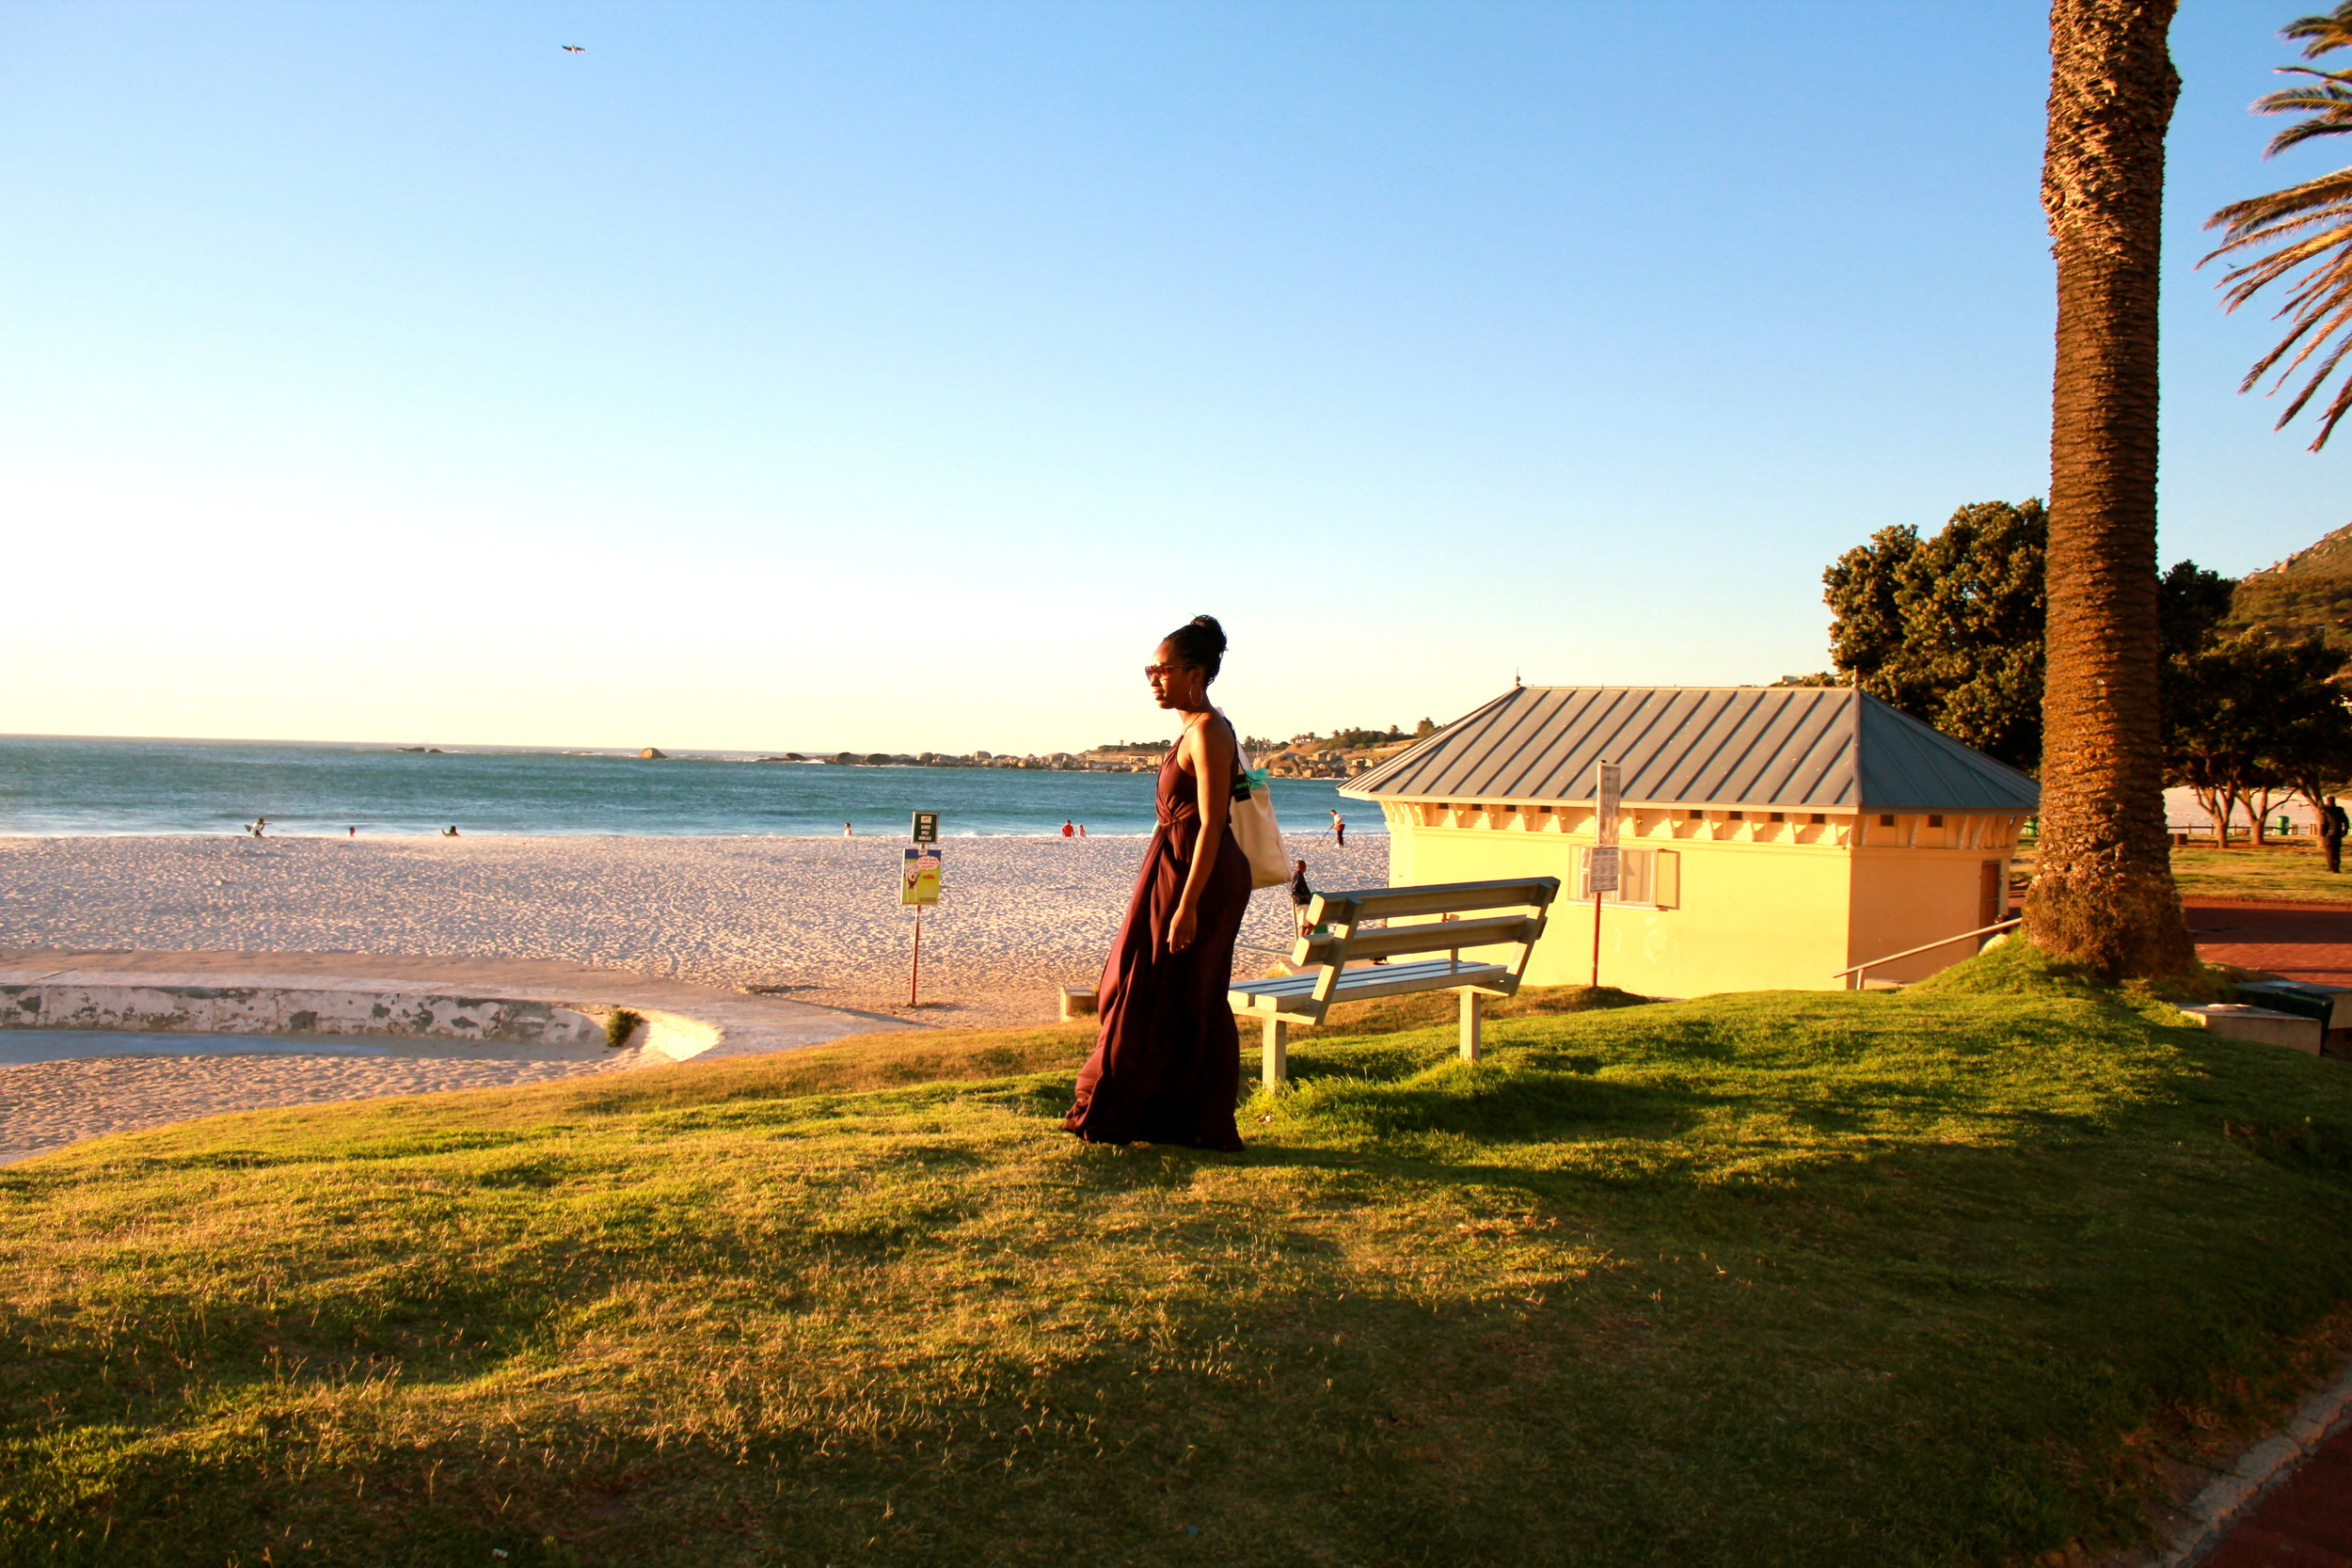 Me on the beach in Cape Town